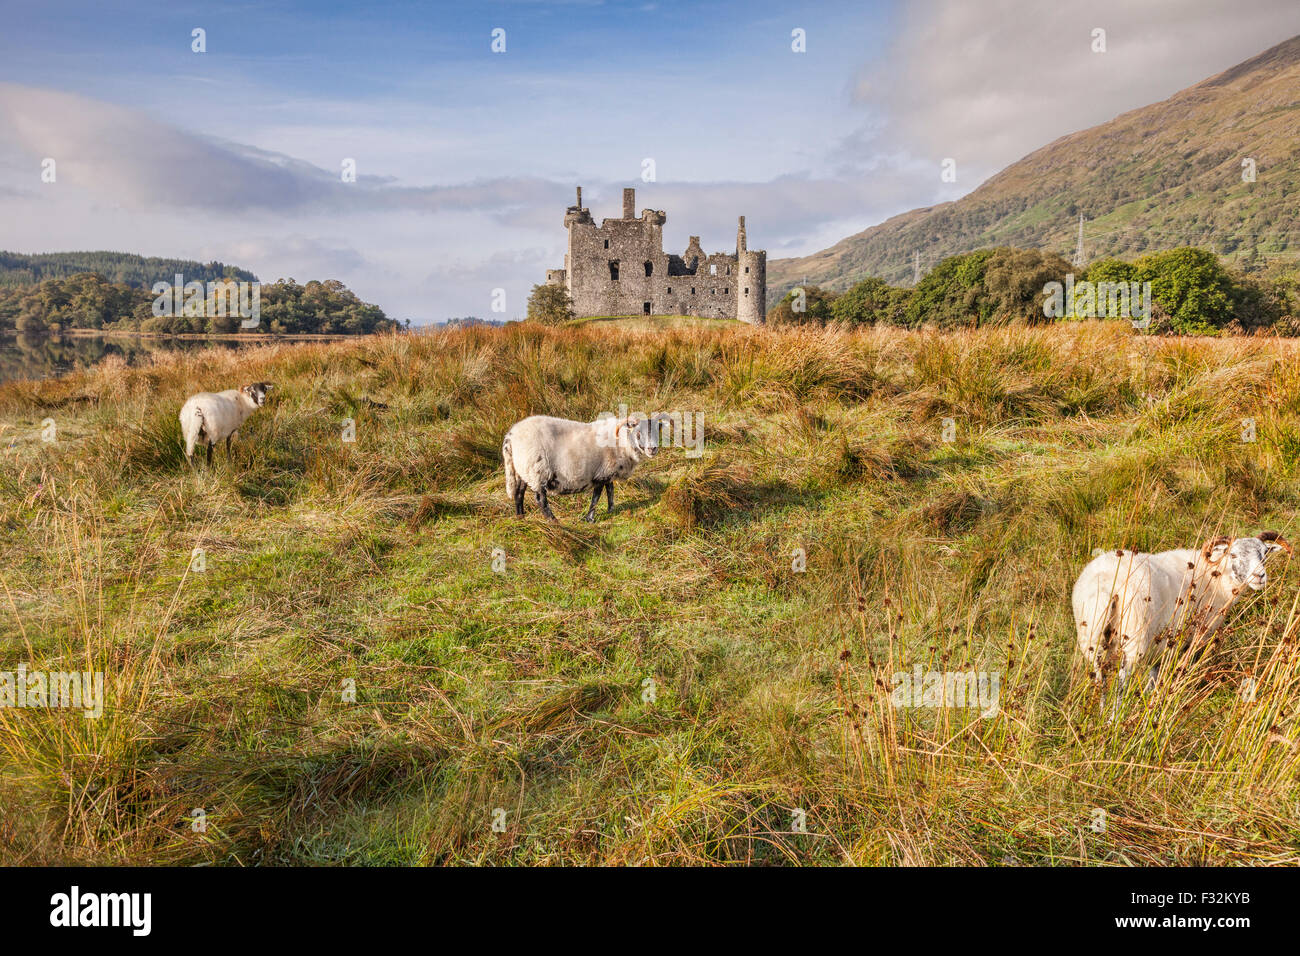 Scottish Blackface Rams at Kilchurn Castle, Argyll and Bute, Scotland, UK. - Stock Image